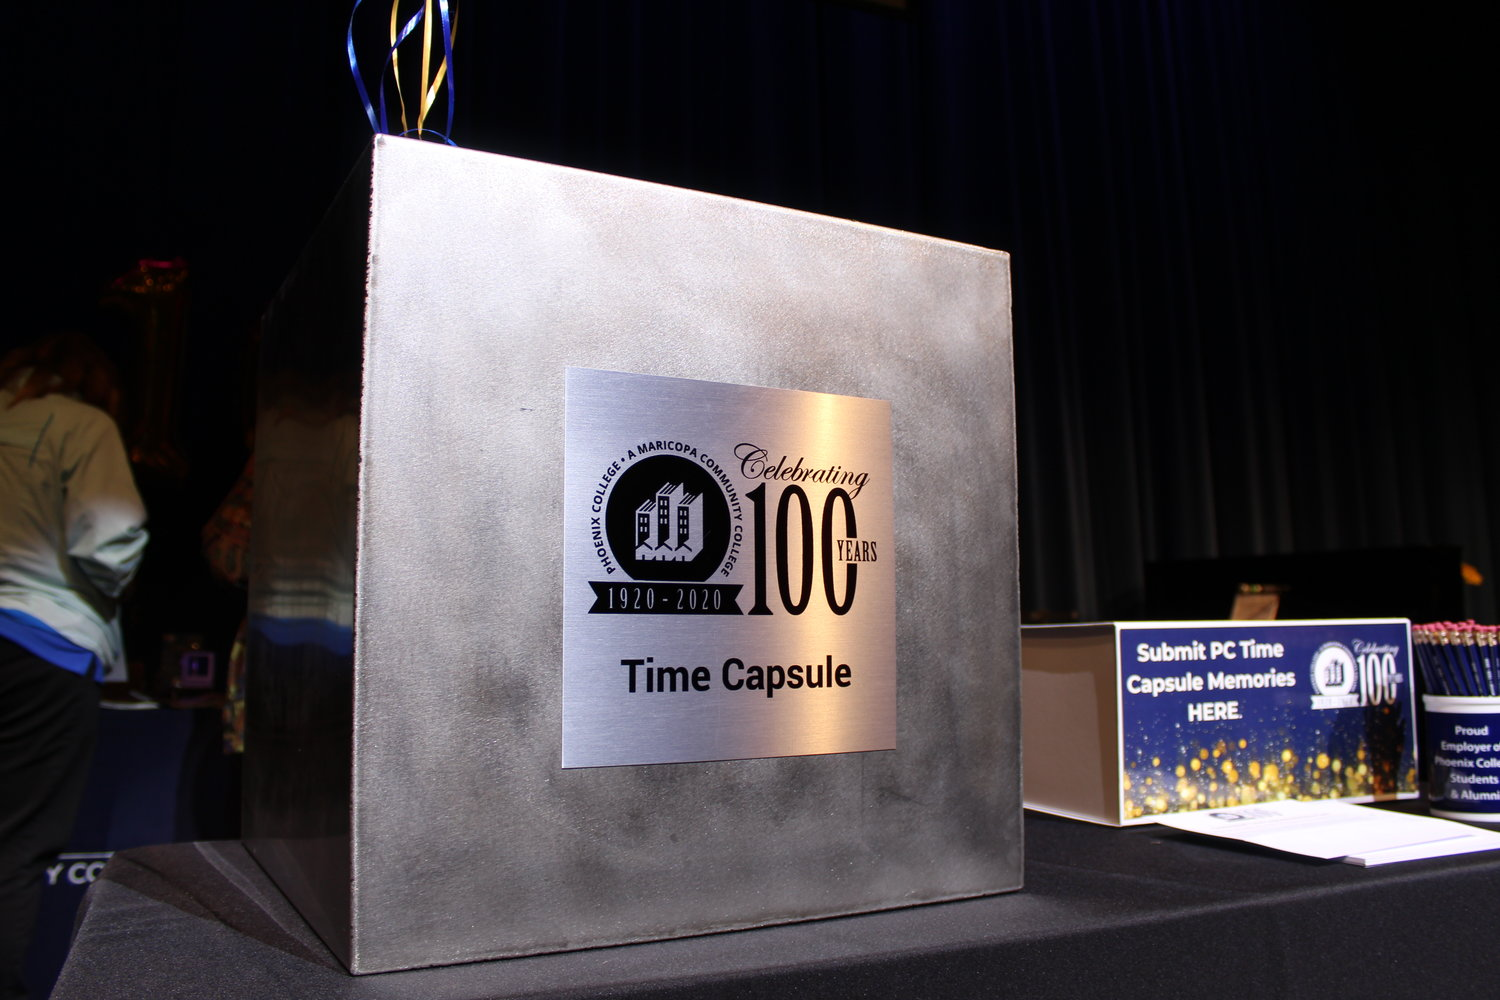 Phoenix College is celebrating 100 years of existence Sept. 13, 2020. The school hosted a time-capsule unveiling in late January.